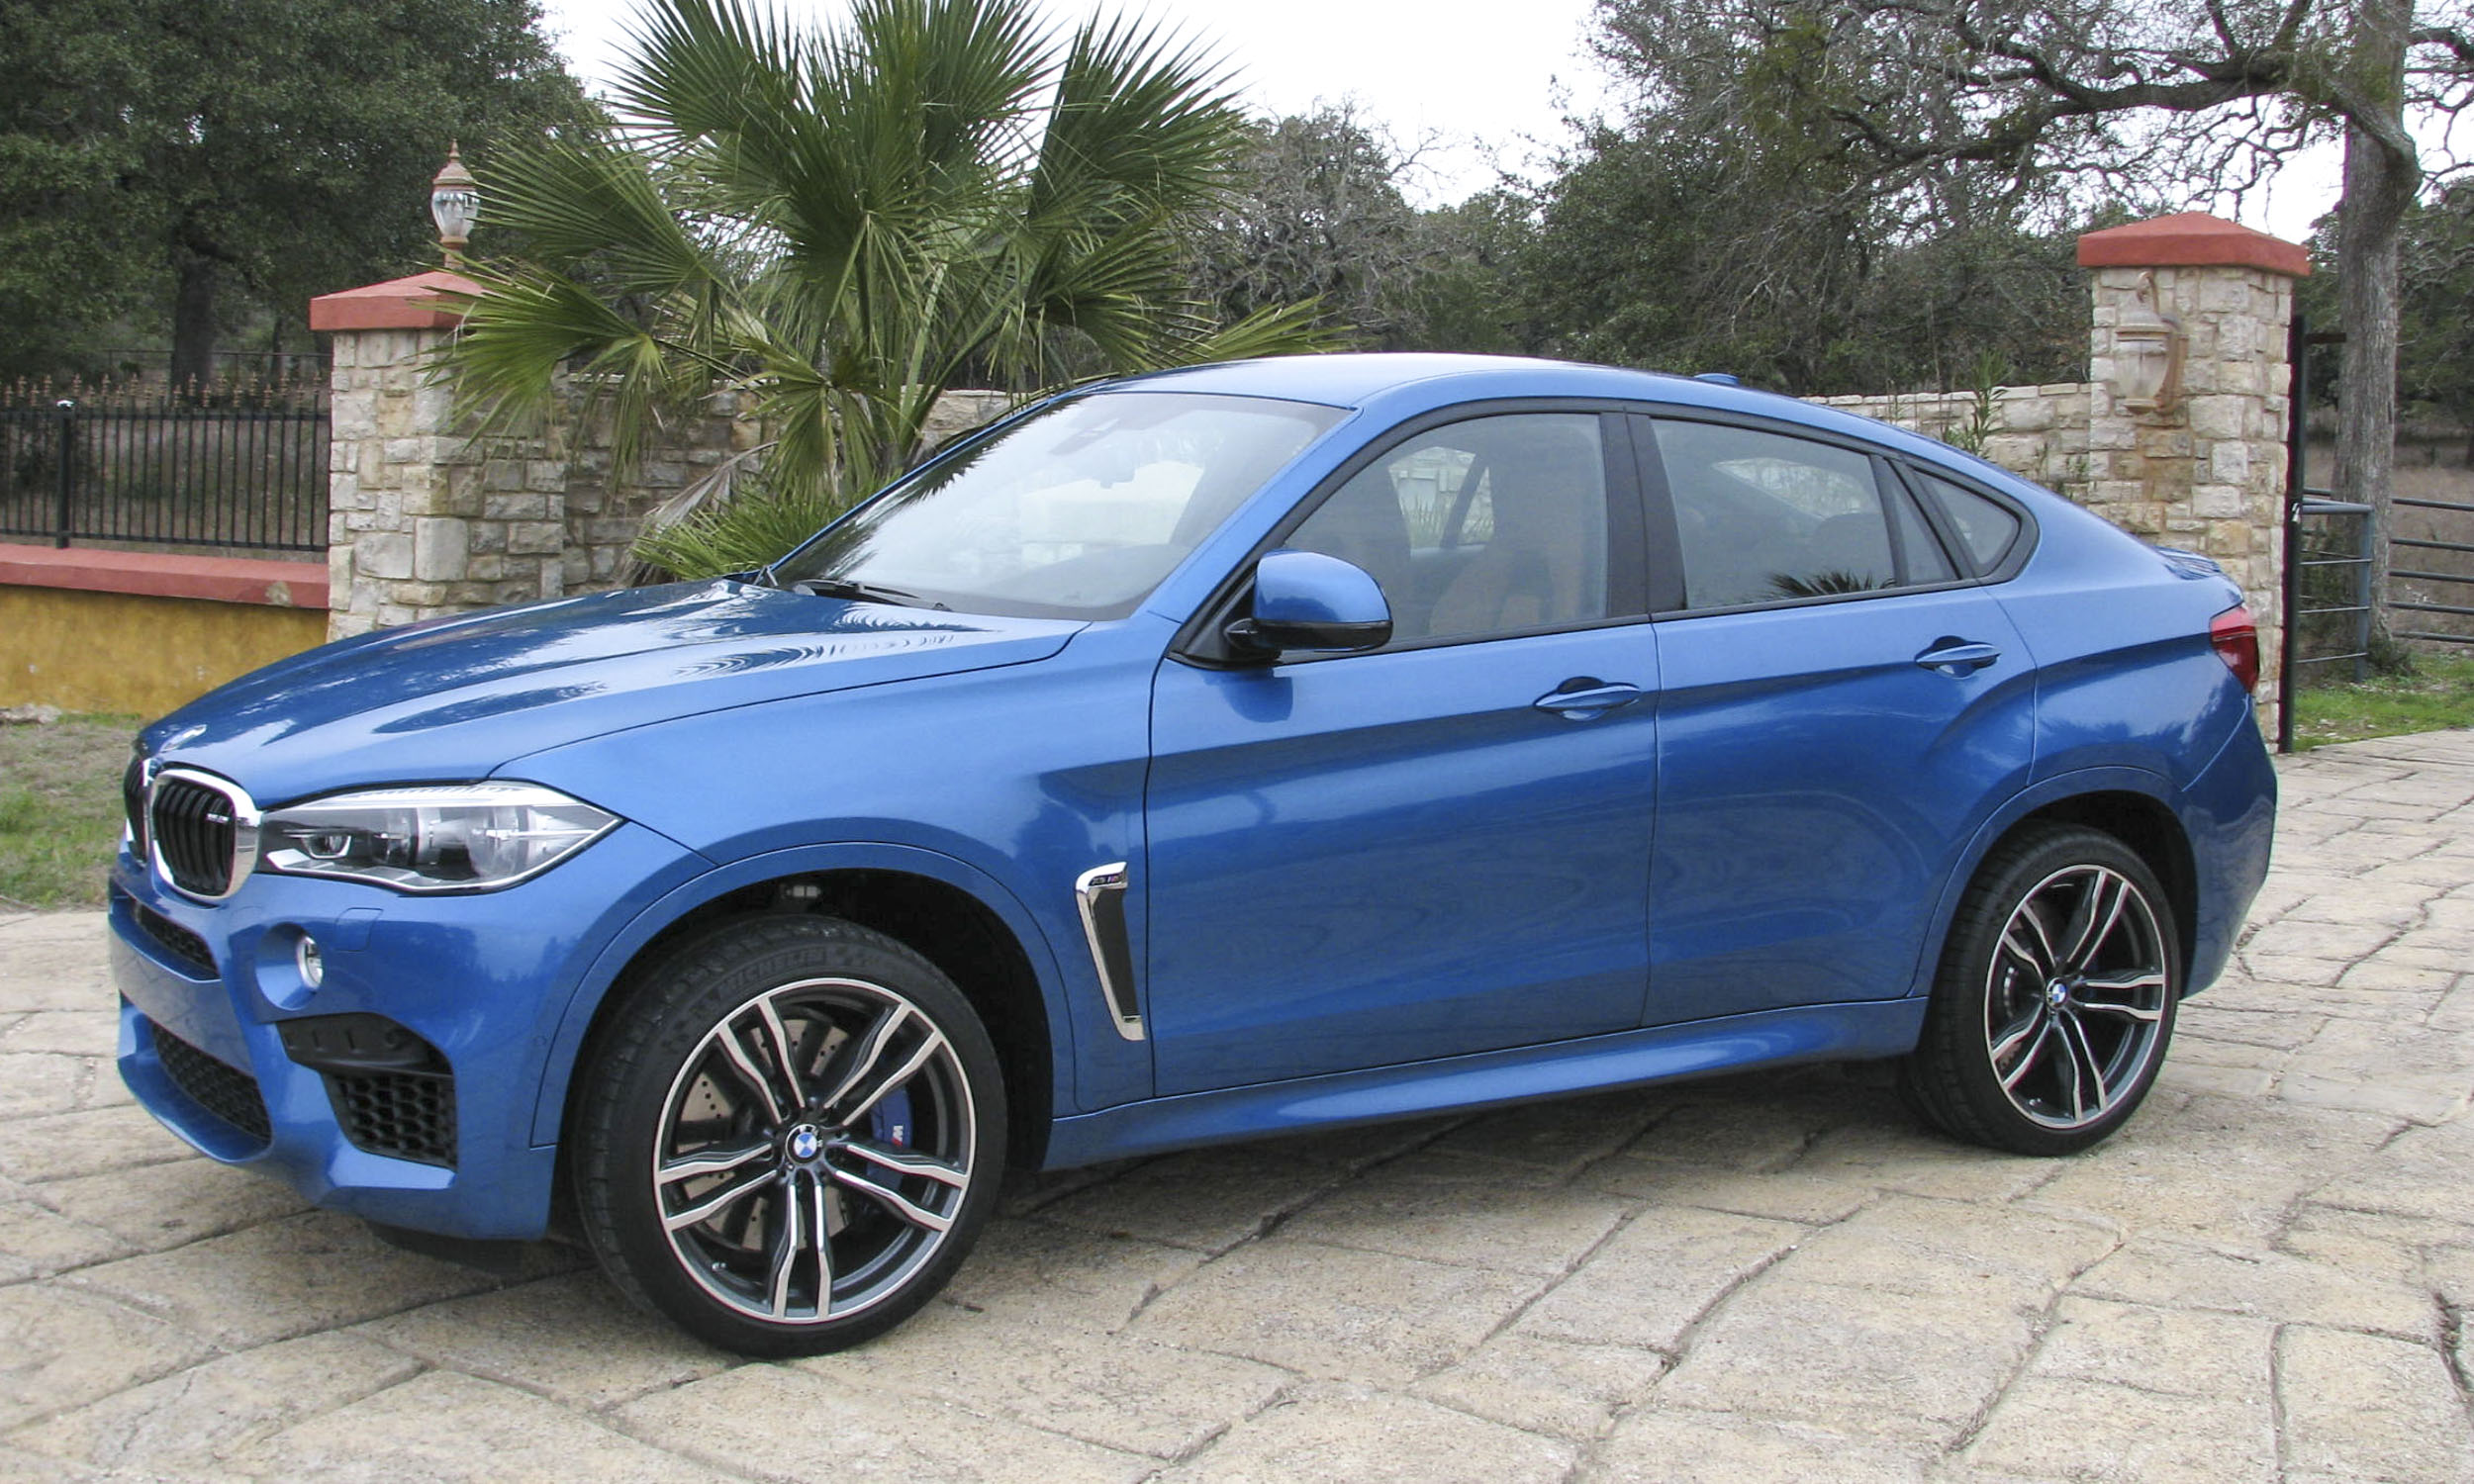 2015 Bmw X6 M Review Automotive Content Experience